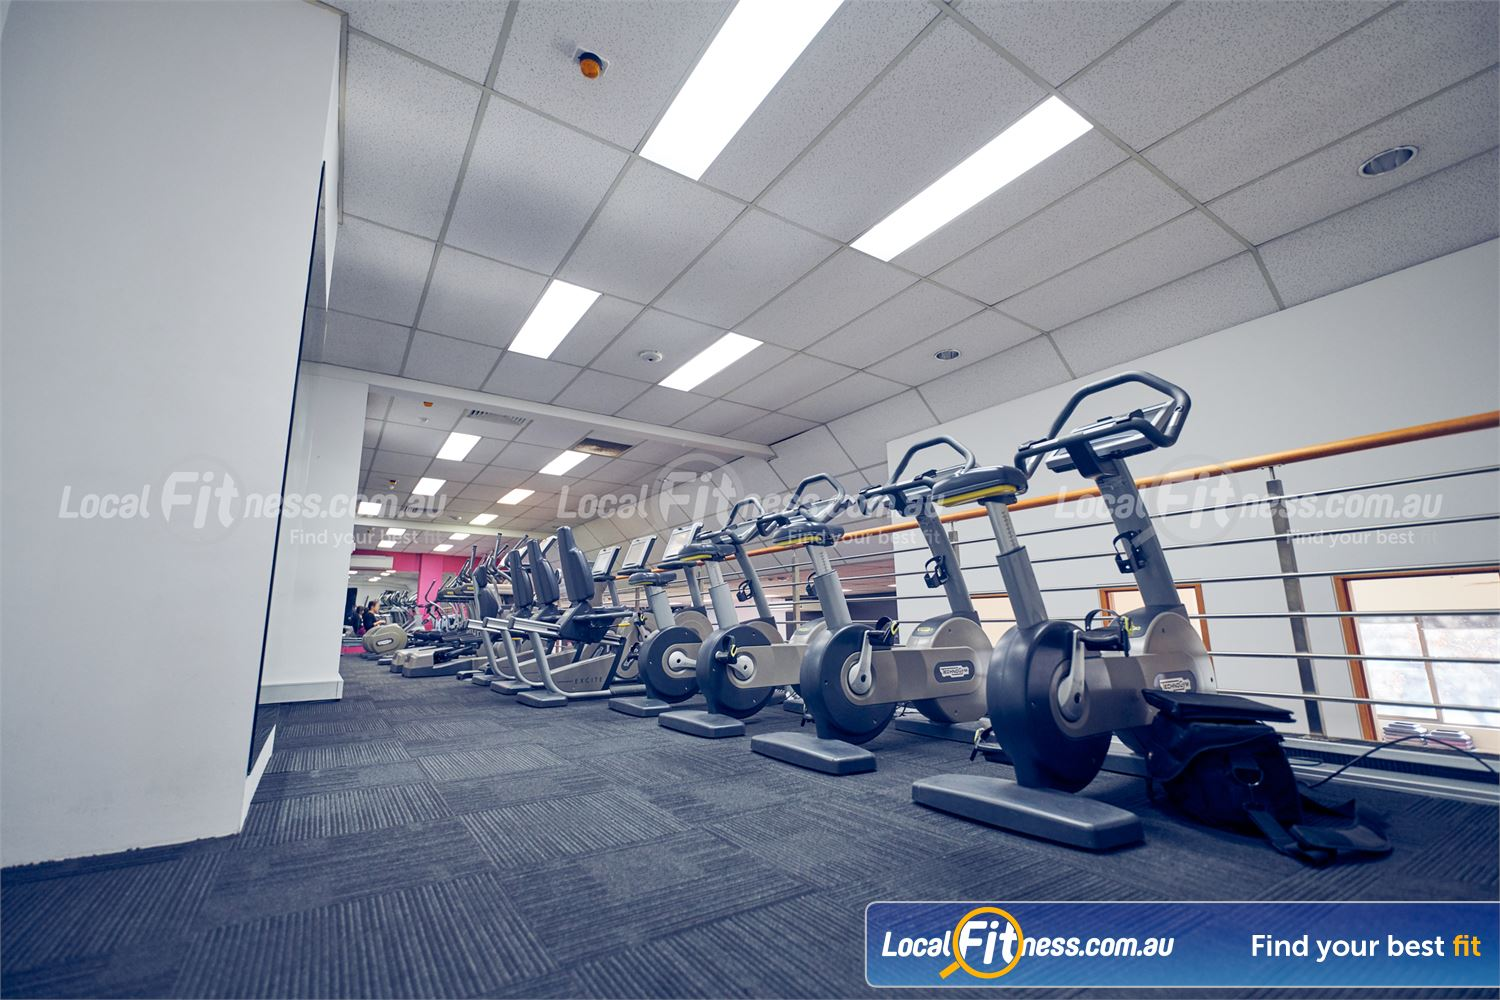 Fernwood Fitness Near Fitzroy State of the art cardio inc. web browsing, TV channels, fitness tracking and more.